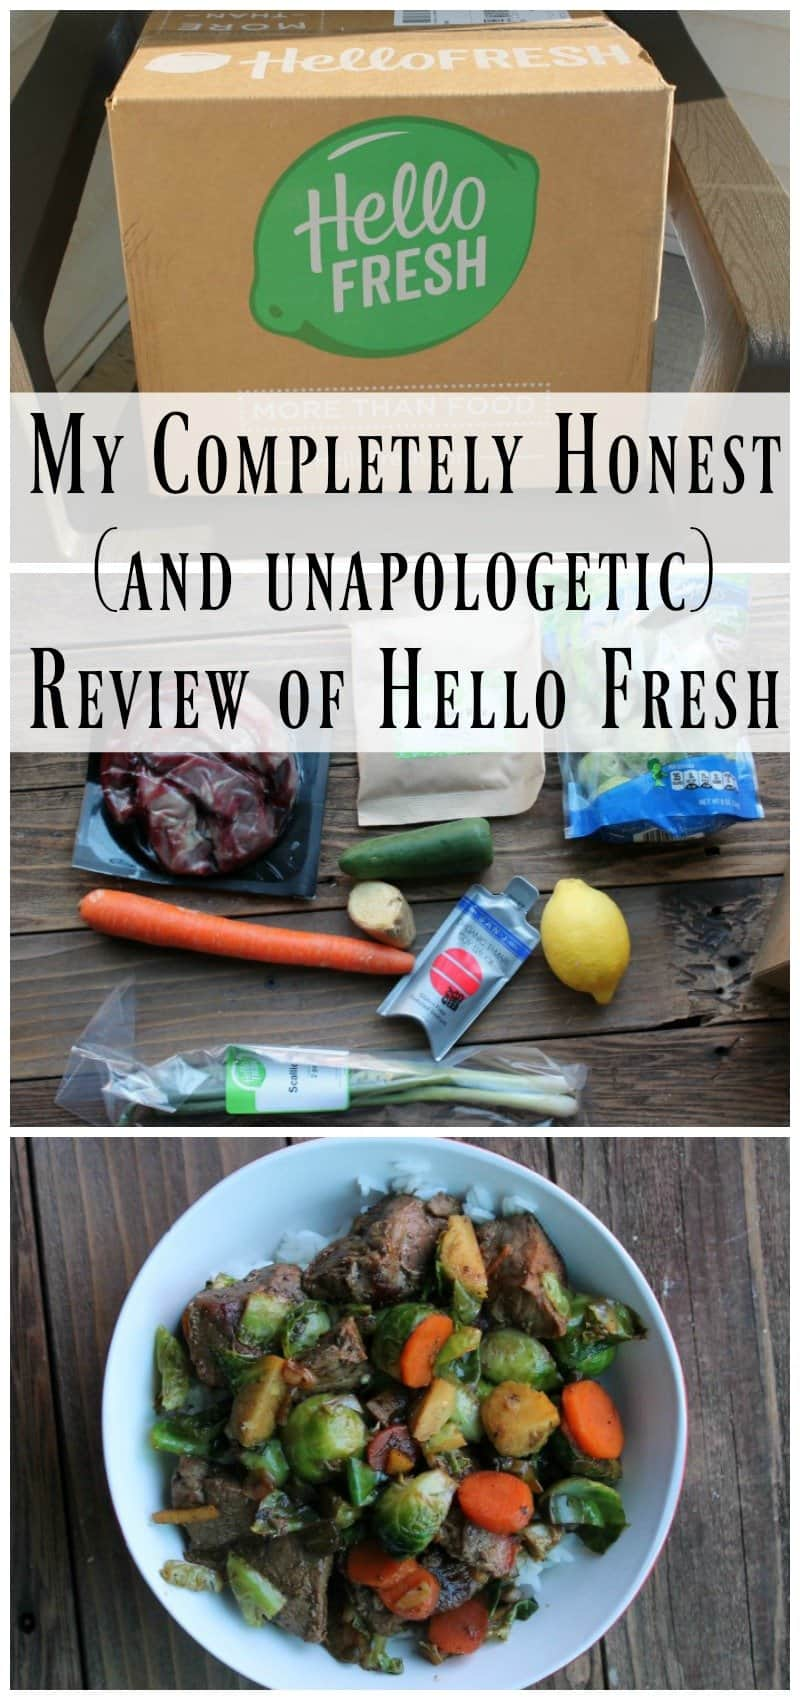 My completely honest and unapologetic review of hello fresh my completely honest and unapologetic review of hello fresh organize yourself skinny forumfinder Images